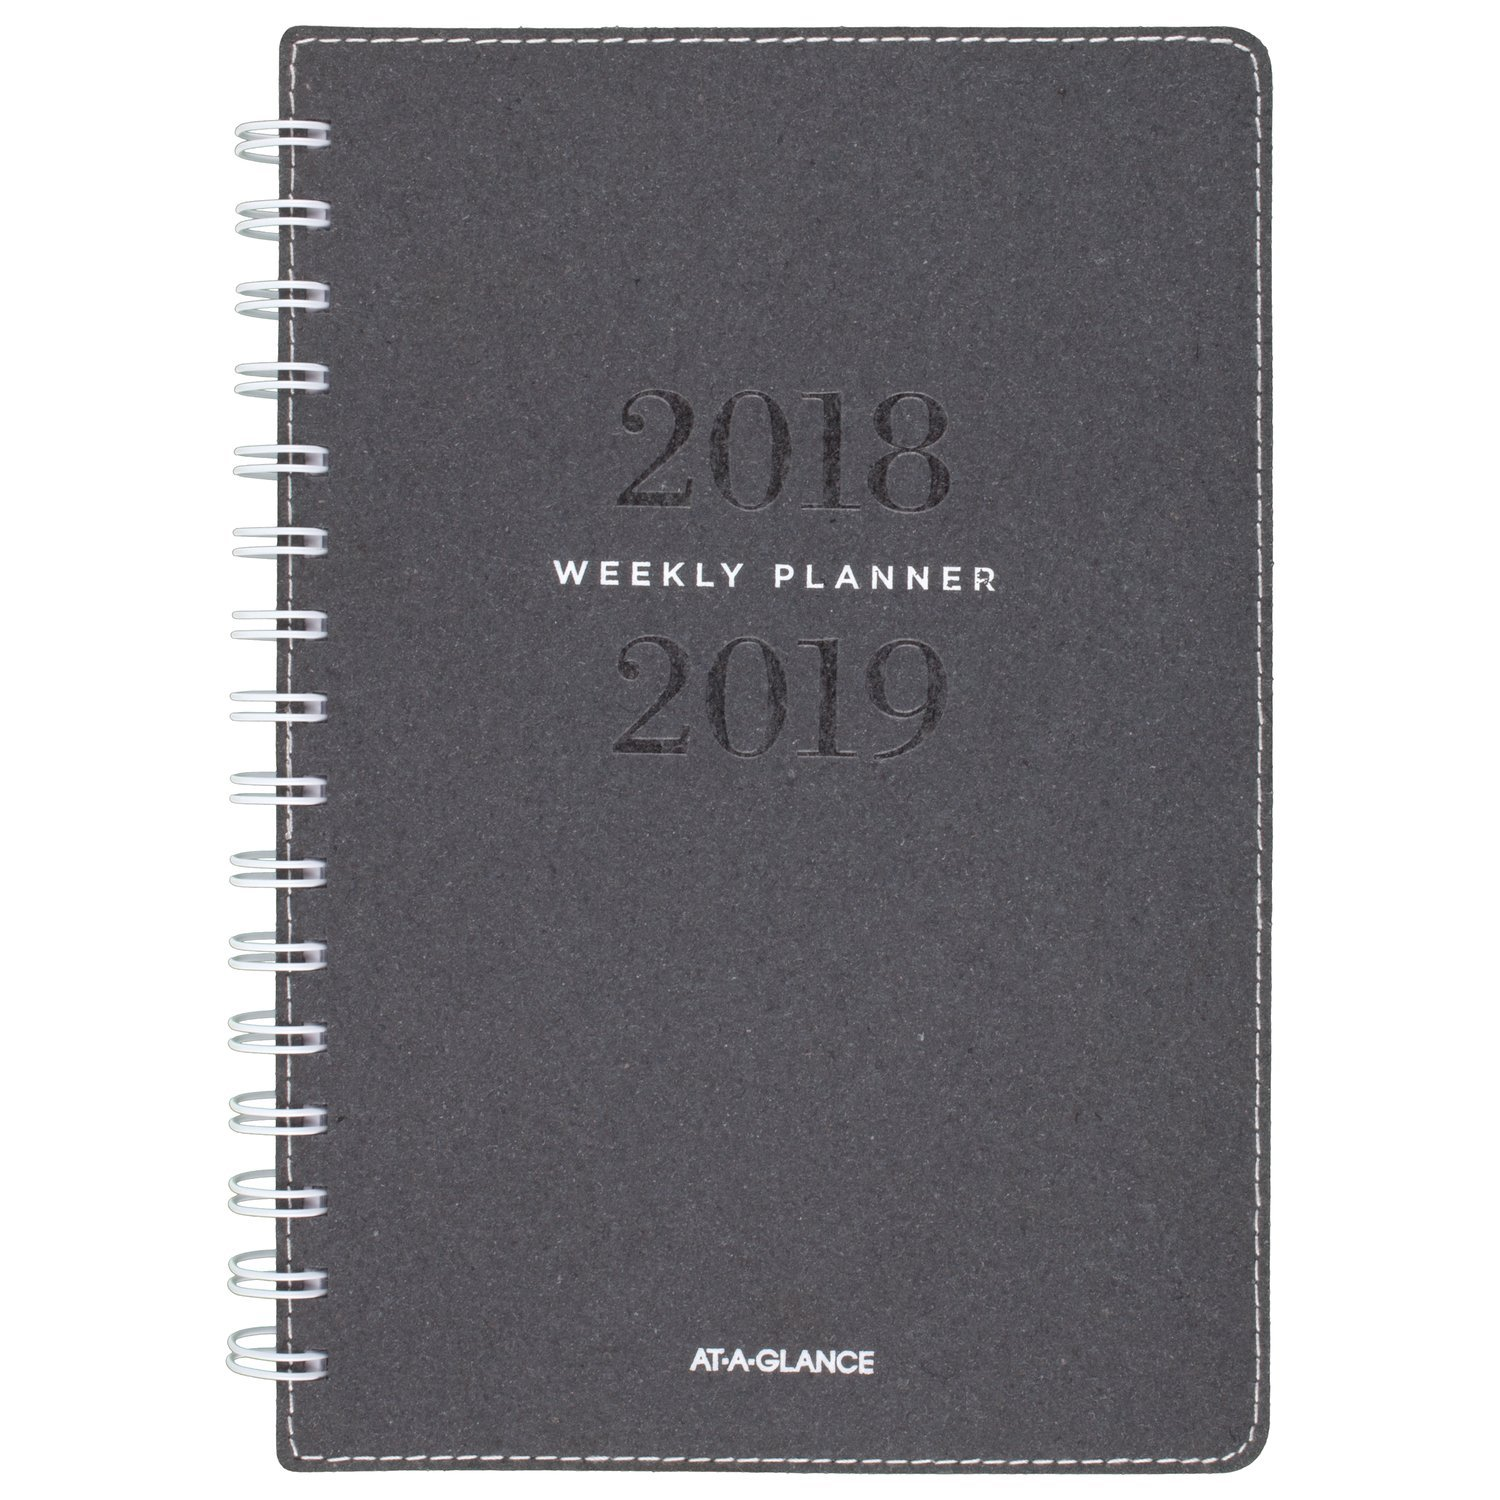 AT-A-GLANCE 2018-2019 Academic Year Weekly & Monthly Planner, Small, 5-3/4 x 8-1/2, Signature Collection, Heather Gray (YP200A45) ACCO Brands YP200A4519